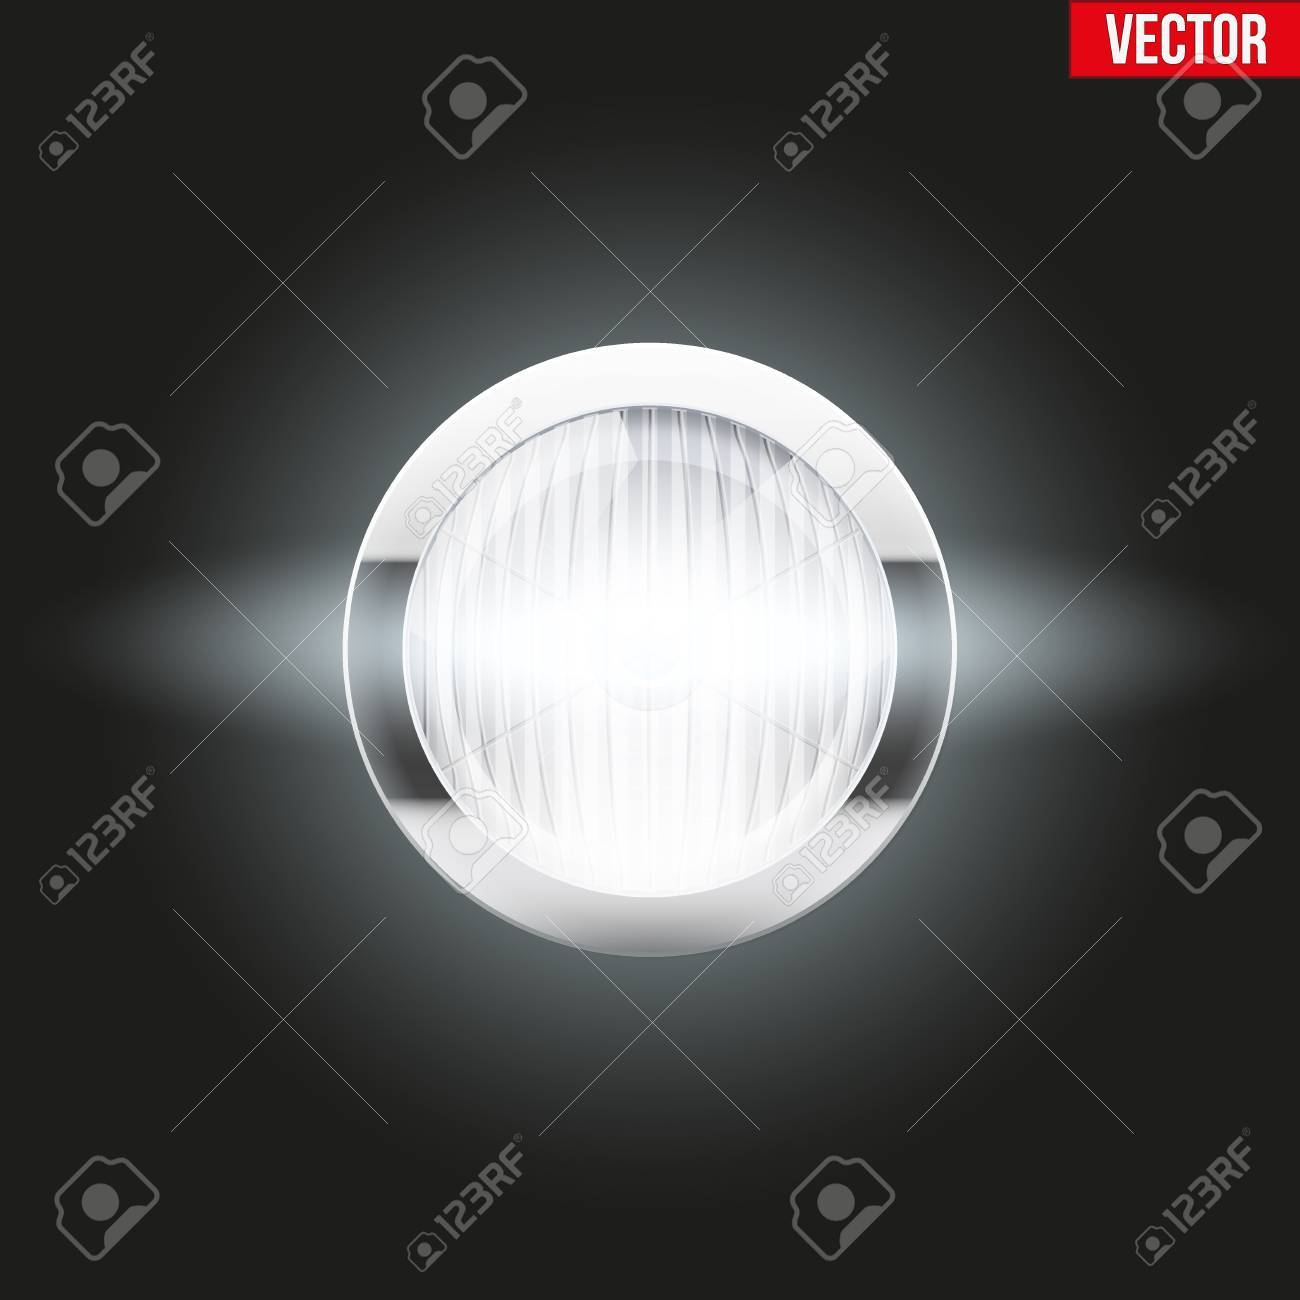 Round Car Headlight Is On. Vintage Illustration Isolated On ... for Car Lamp Vector  153tgx